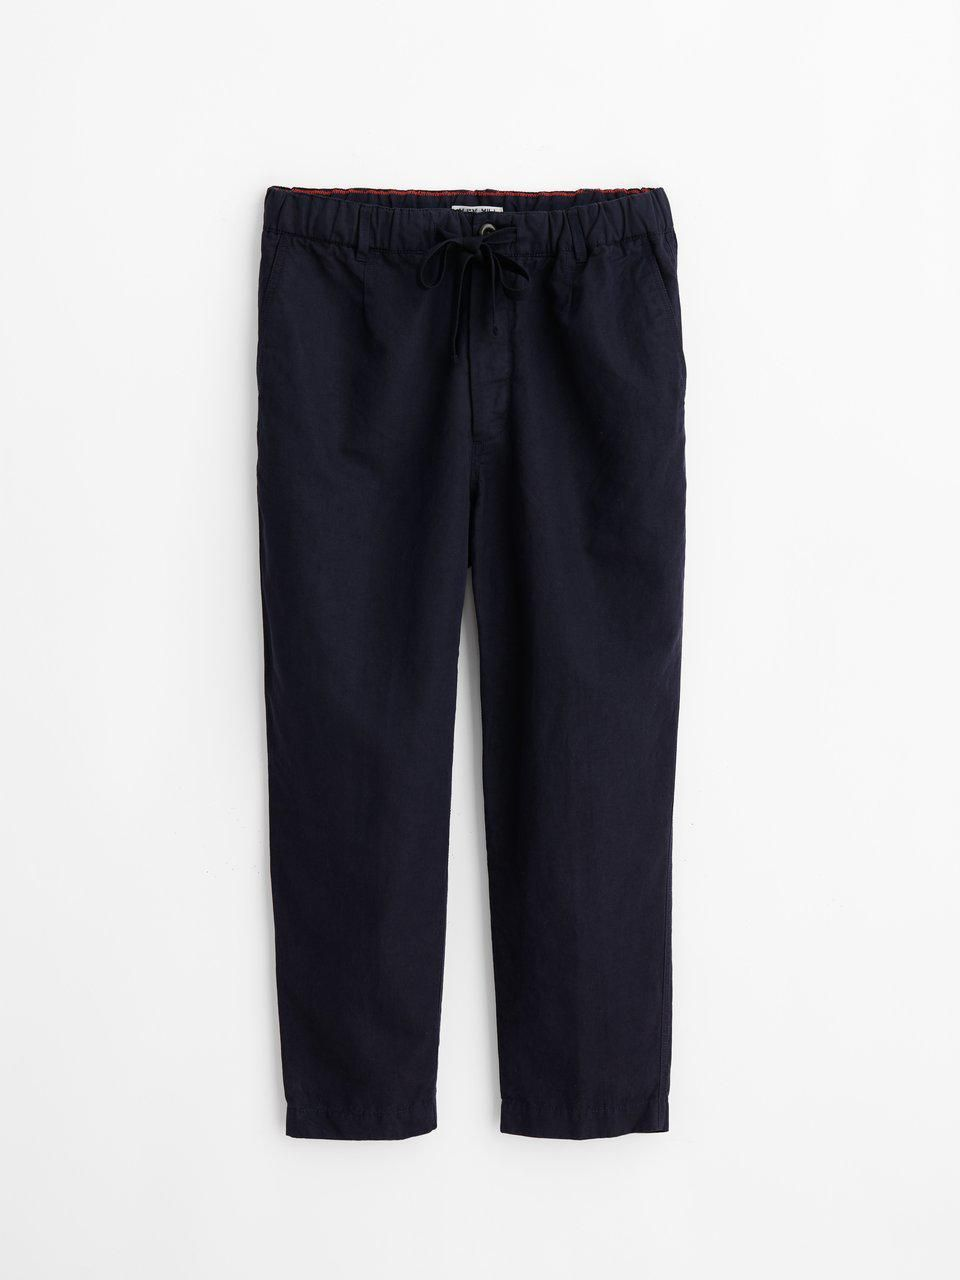 Pull On Pants in Cotton Linen